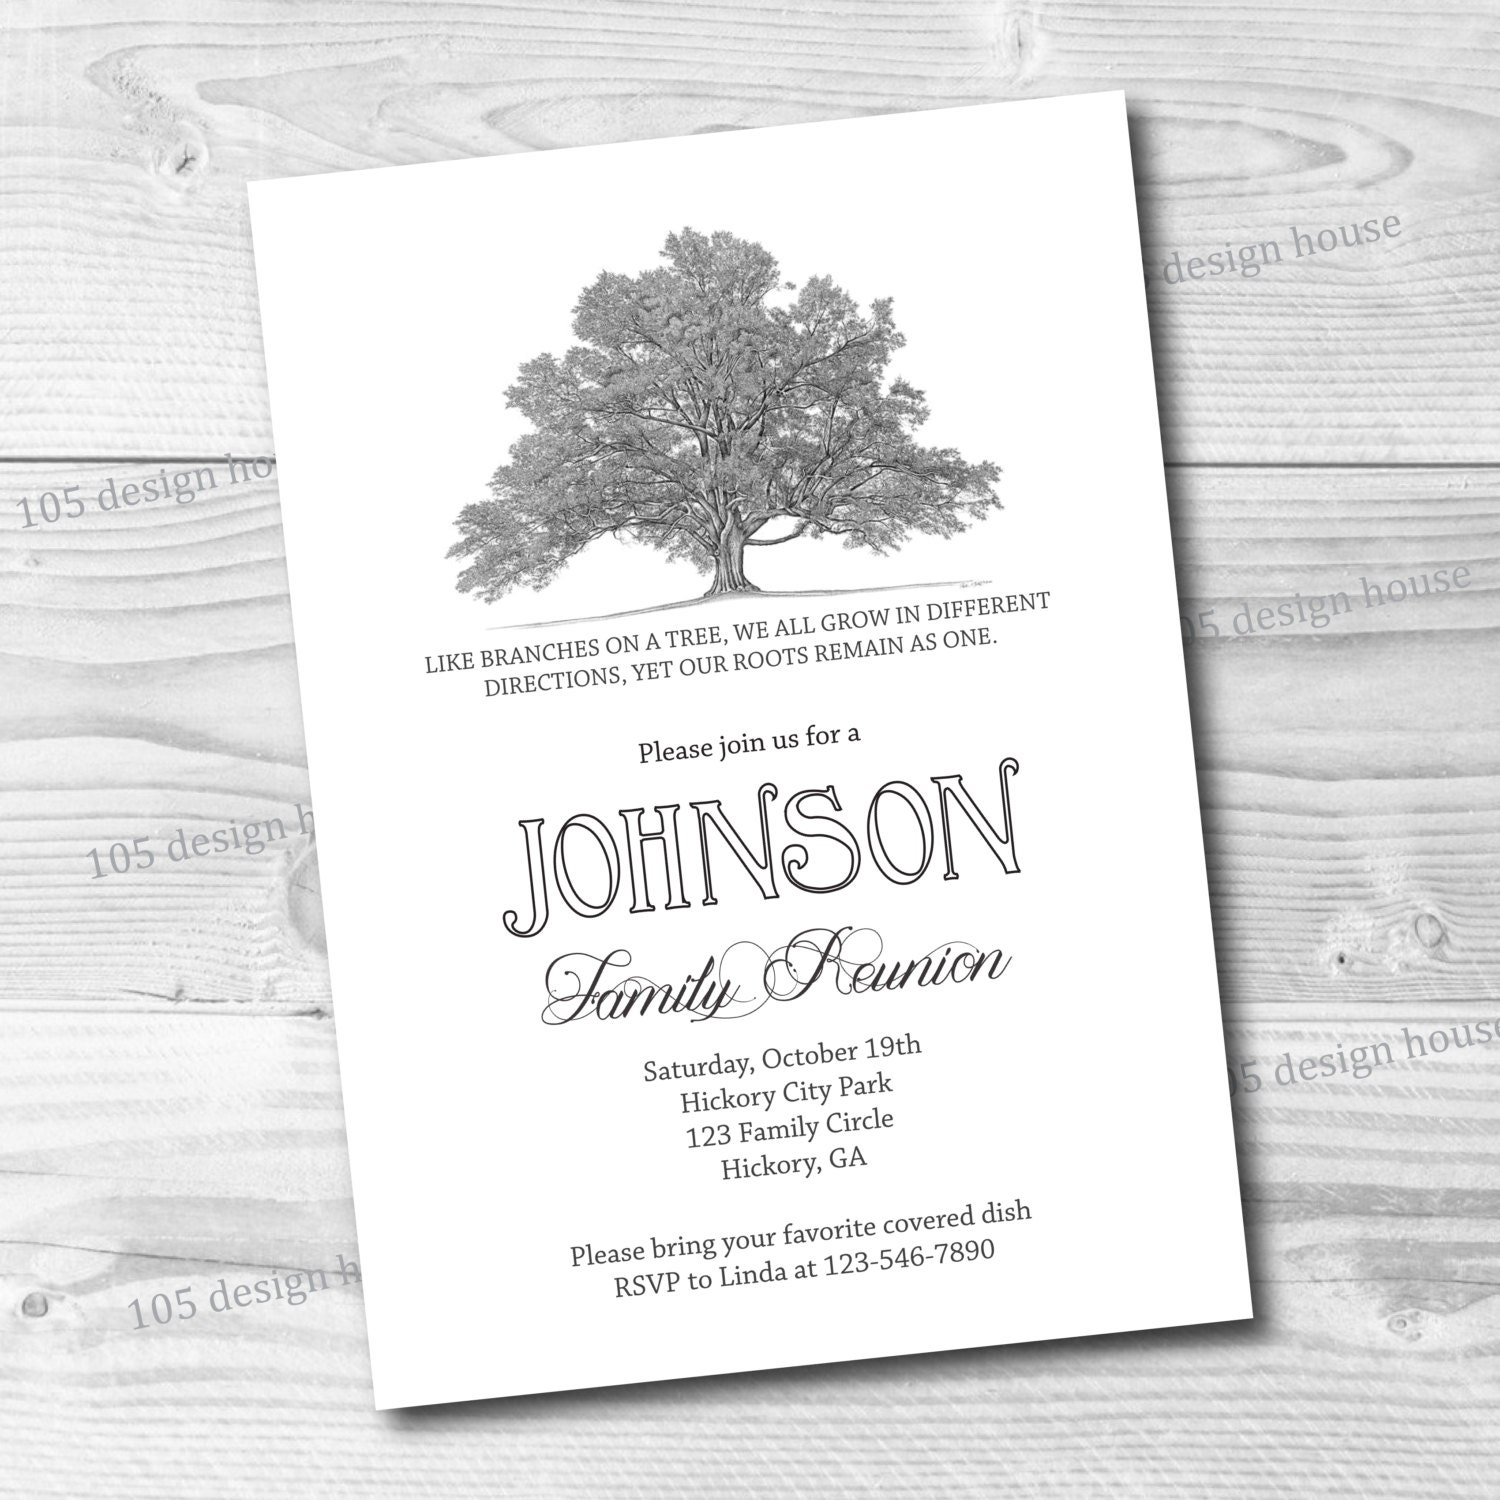 This is an image of Exhilarating Free Printable Family Reunion Invitations